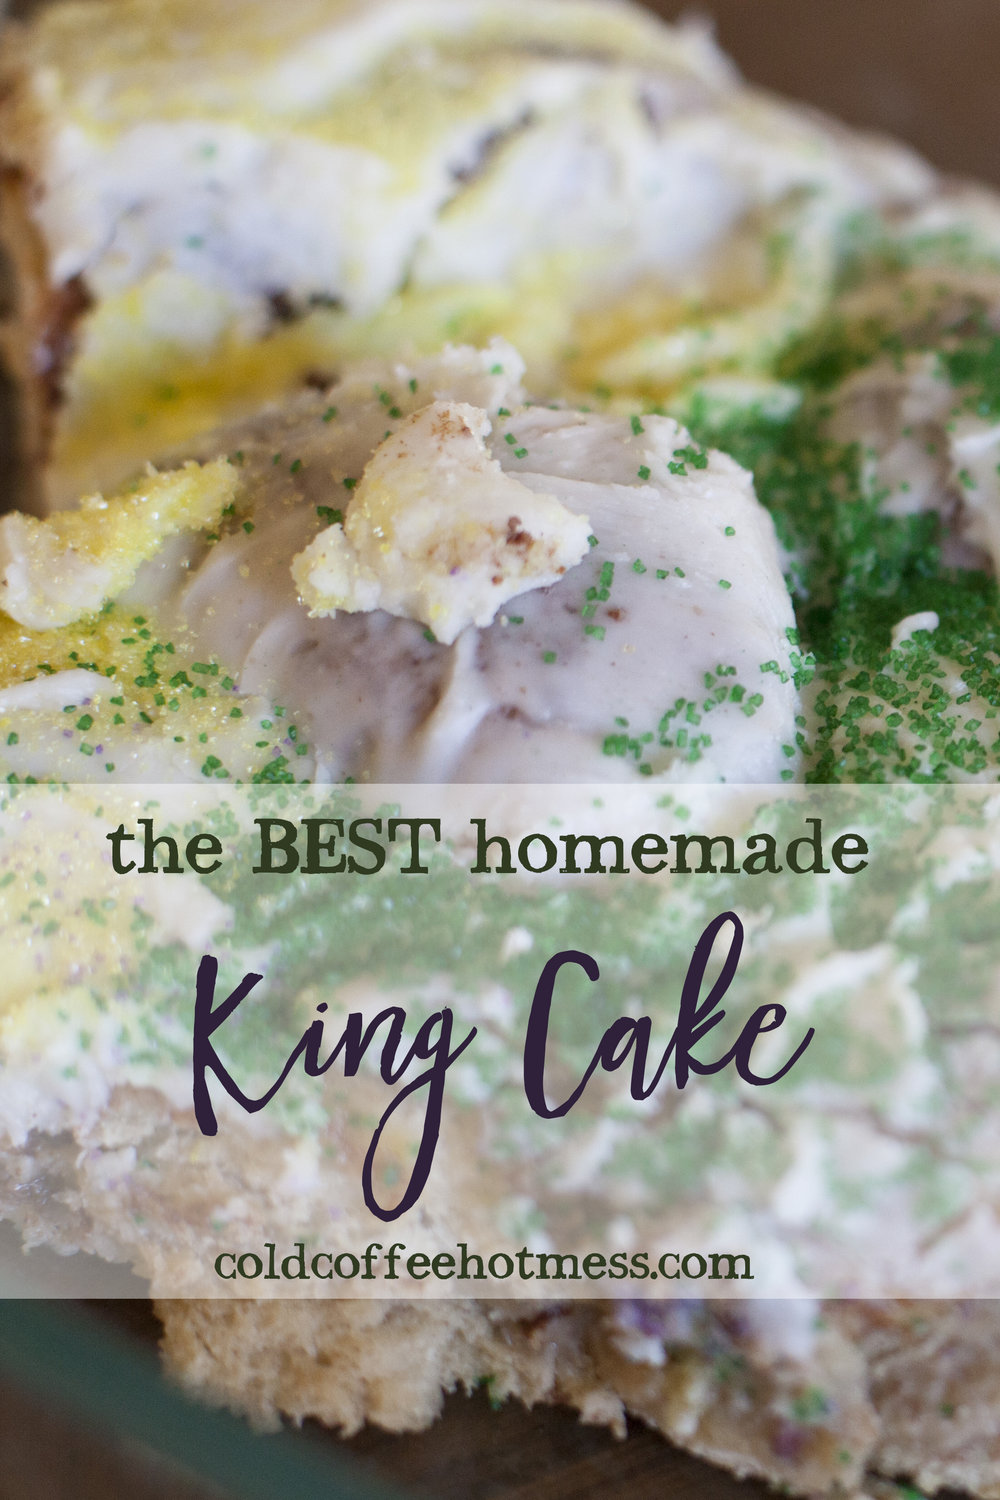 best-homemade-kingcake.jpg